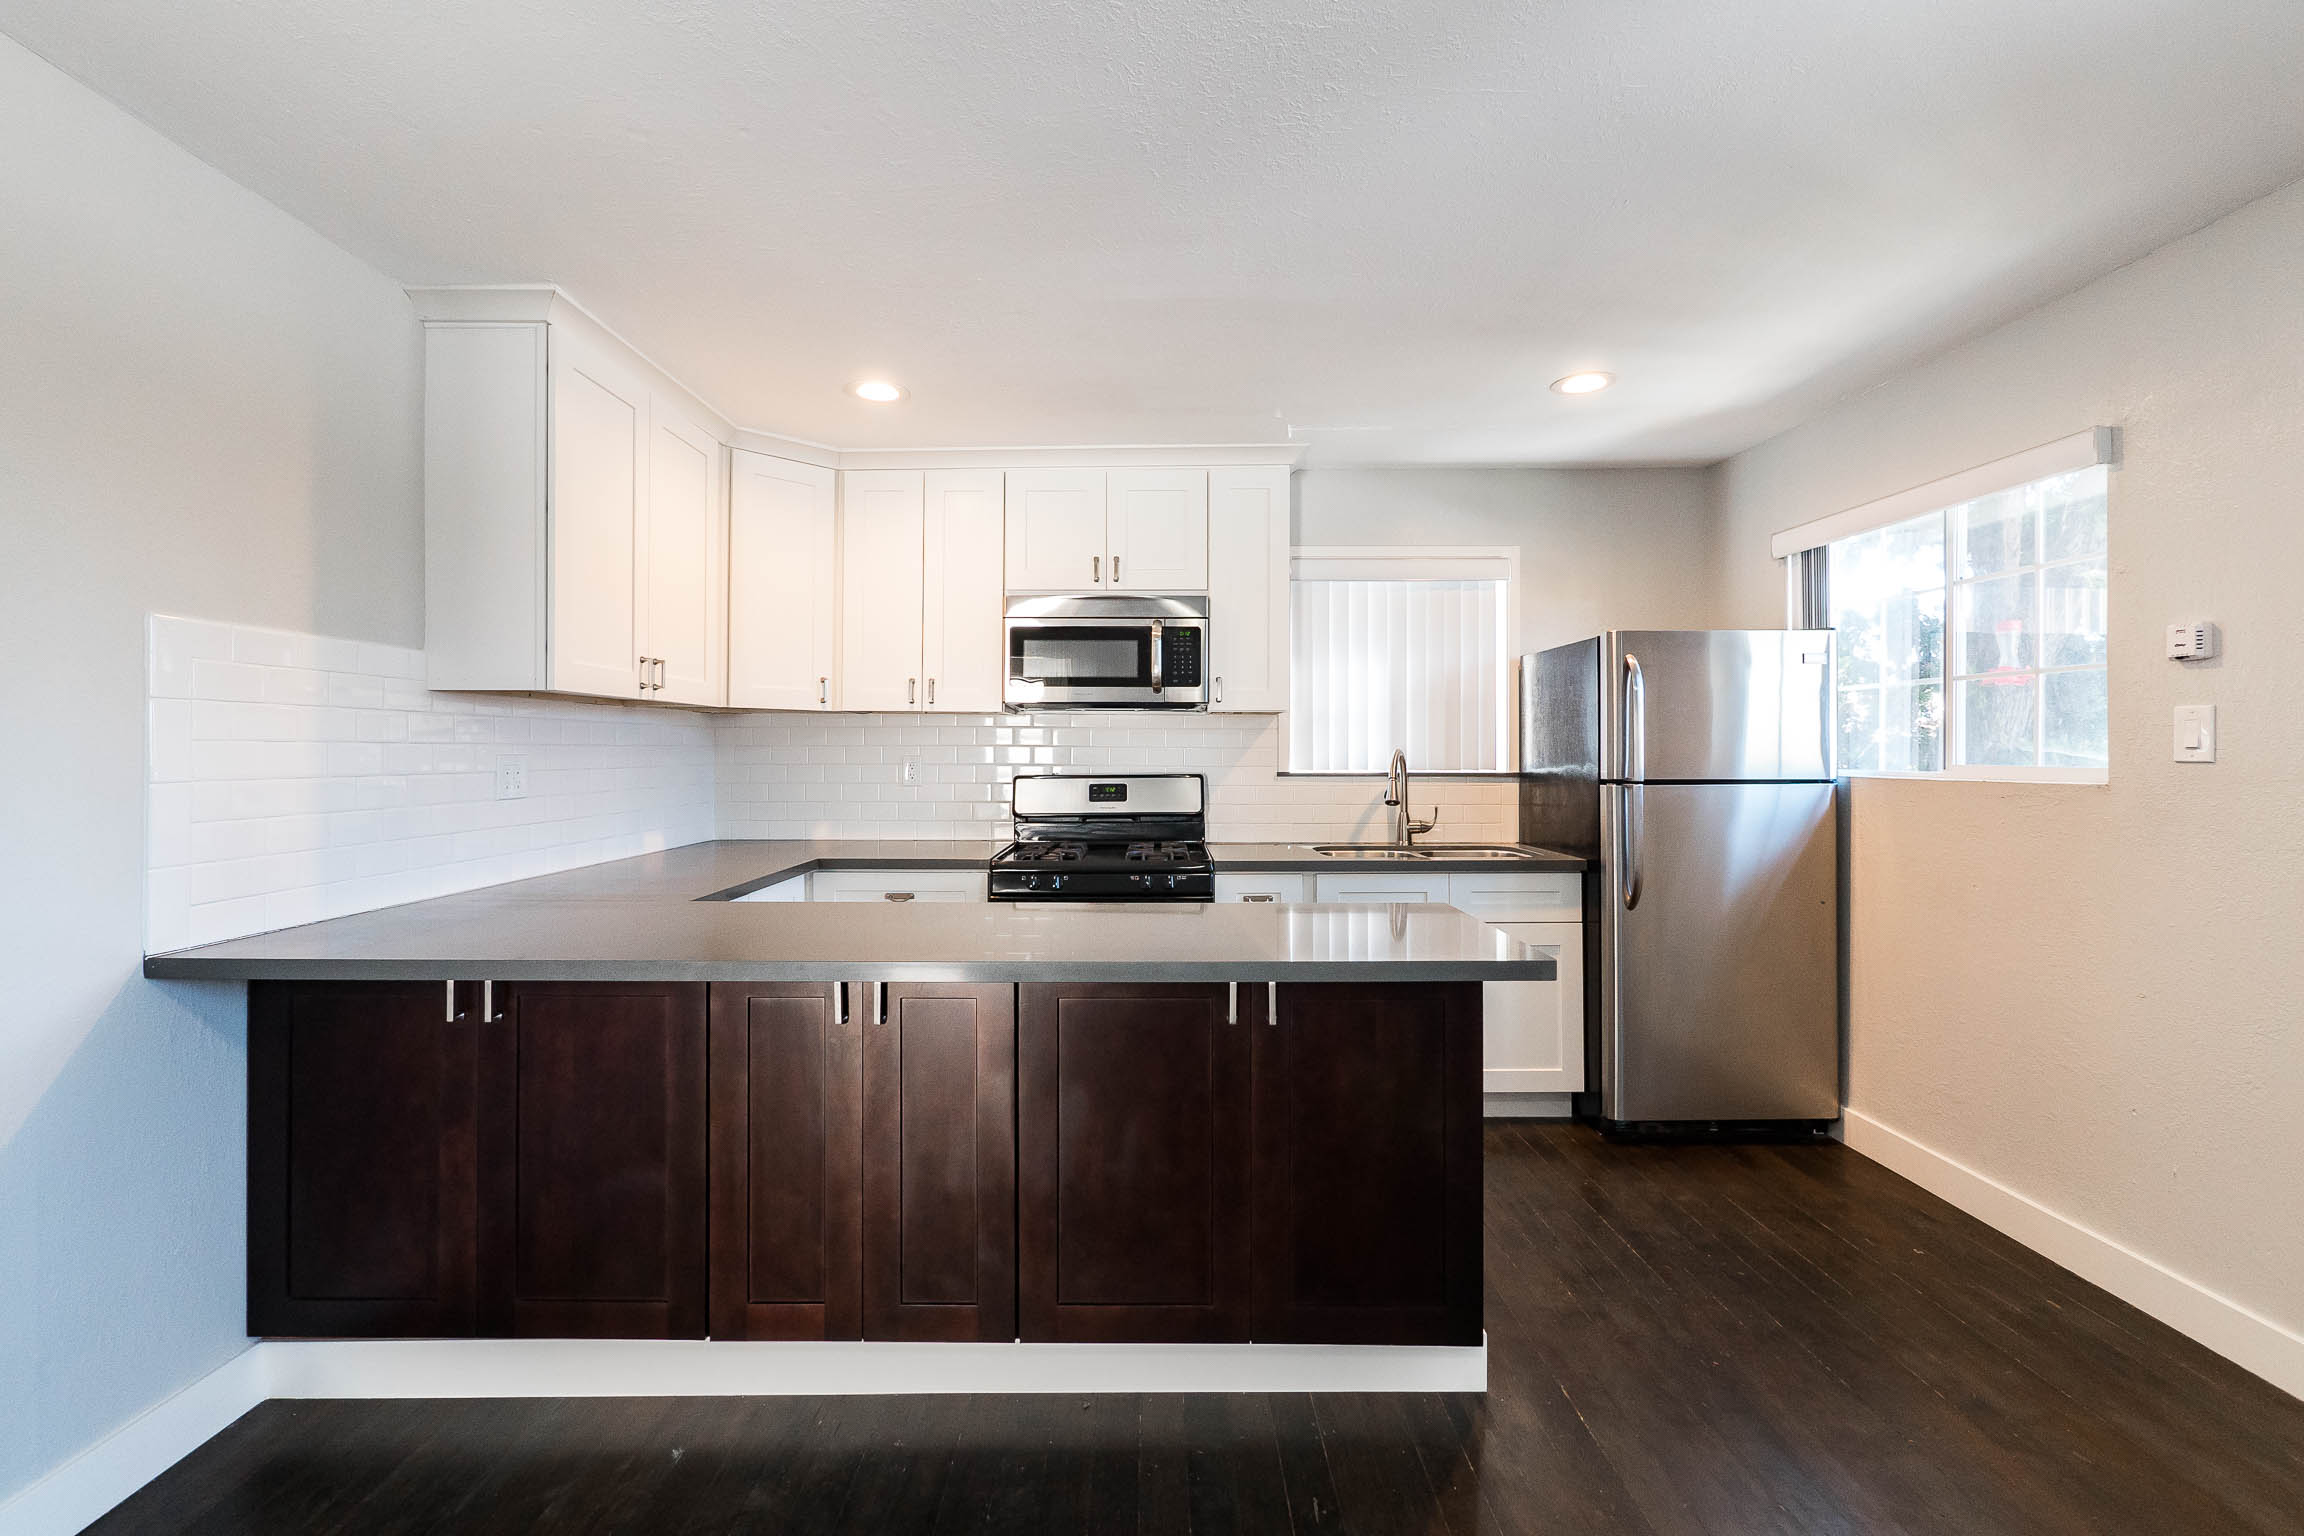 Beautifully Renovated 2 bed/1Bath Home -Sleek Finishes - Huge Kitchen-Private Outdoor Space- Convenient Location